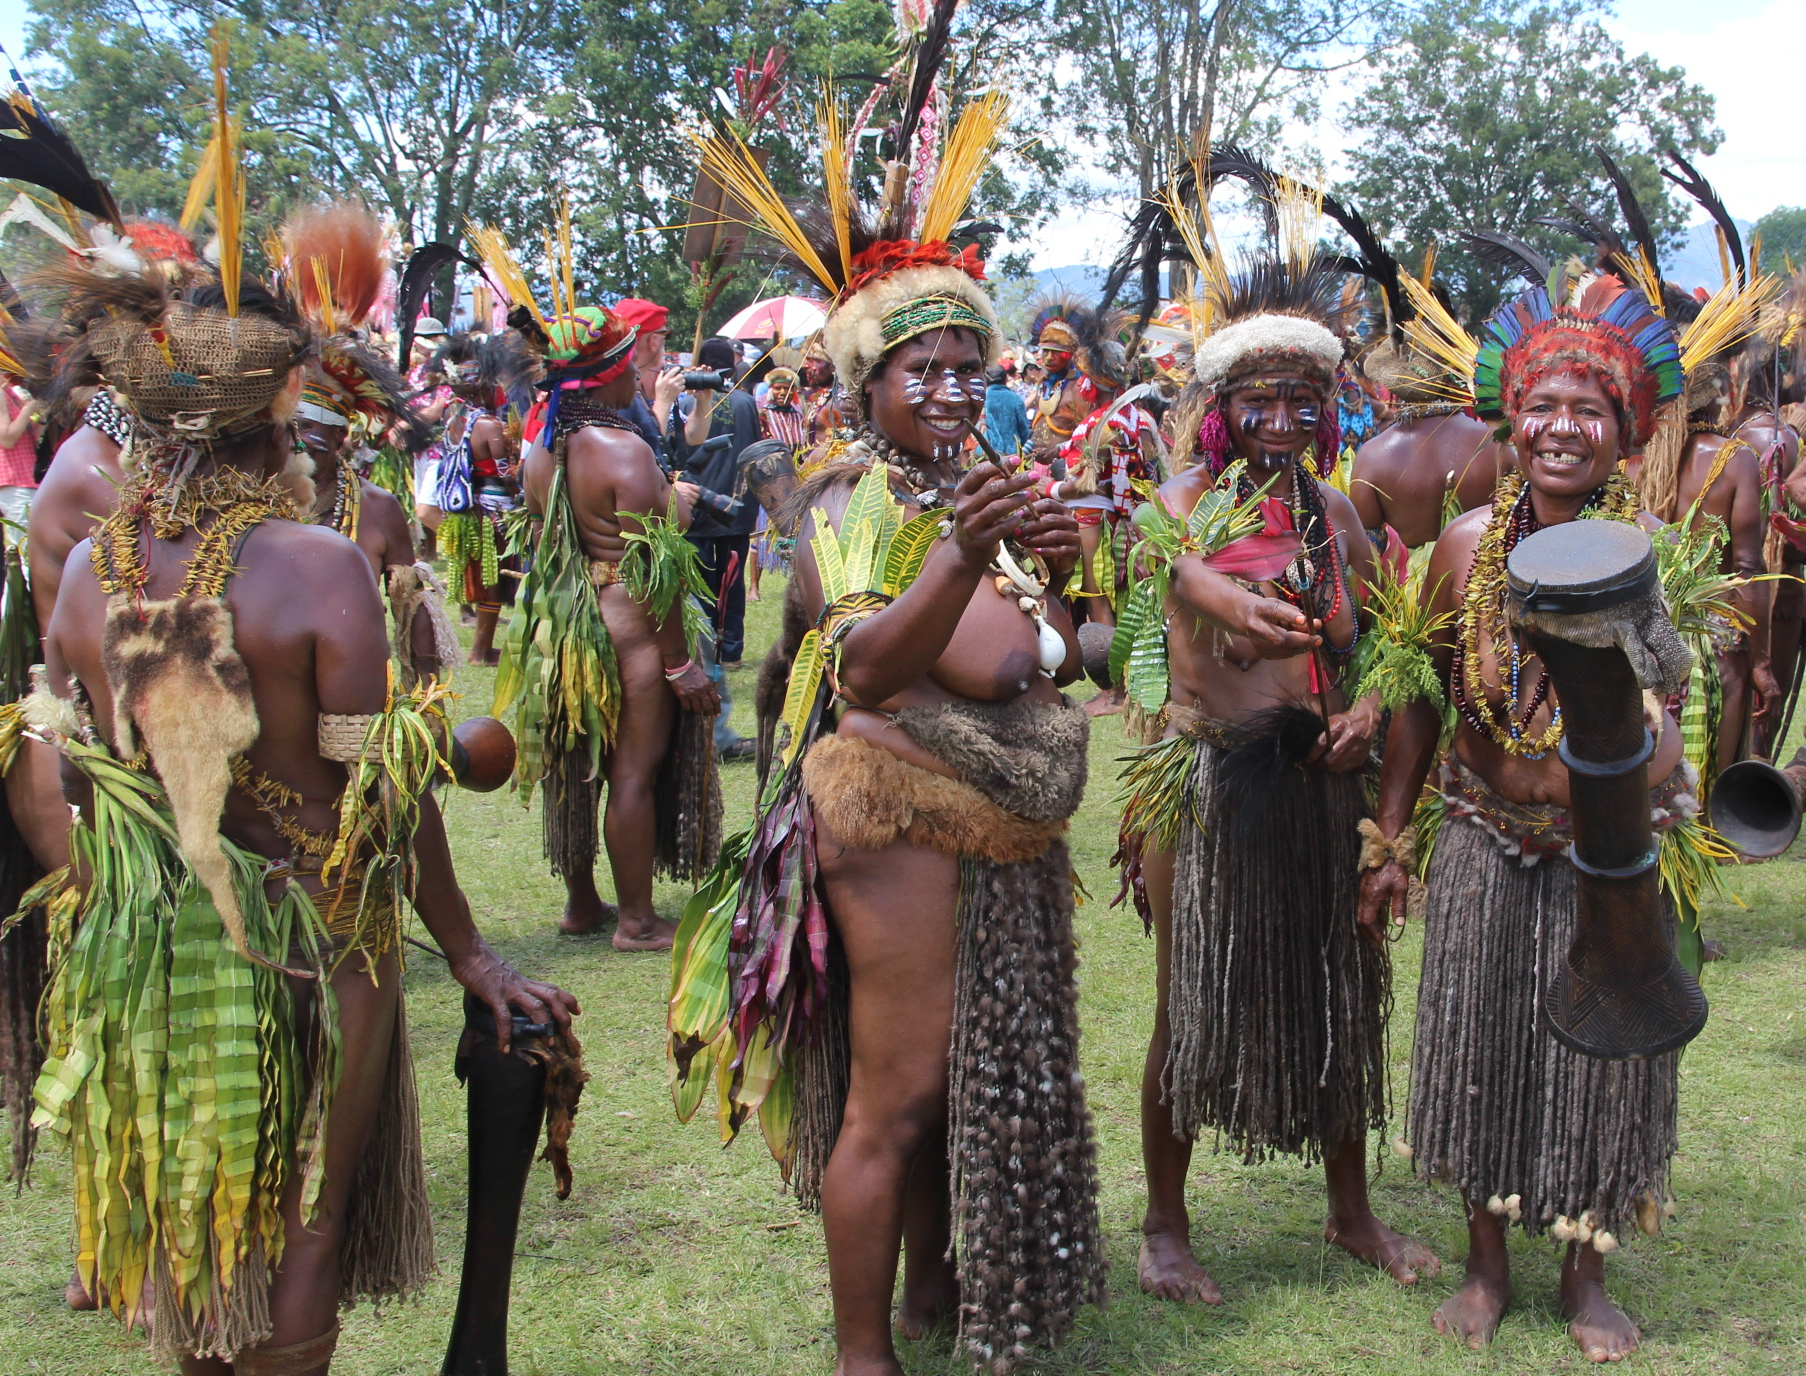 See What Others Paid For Cars >> No skirting around the Goroka Show—it's all upfront | Where to next?